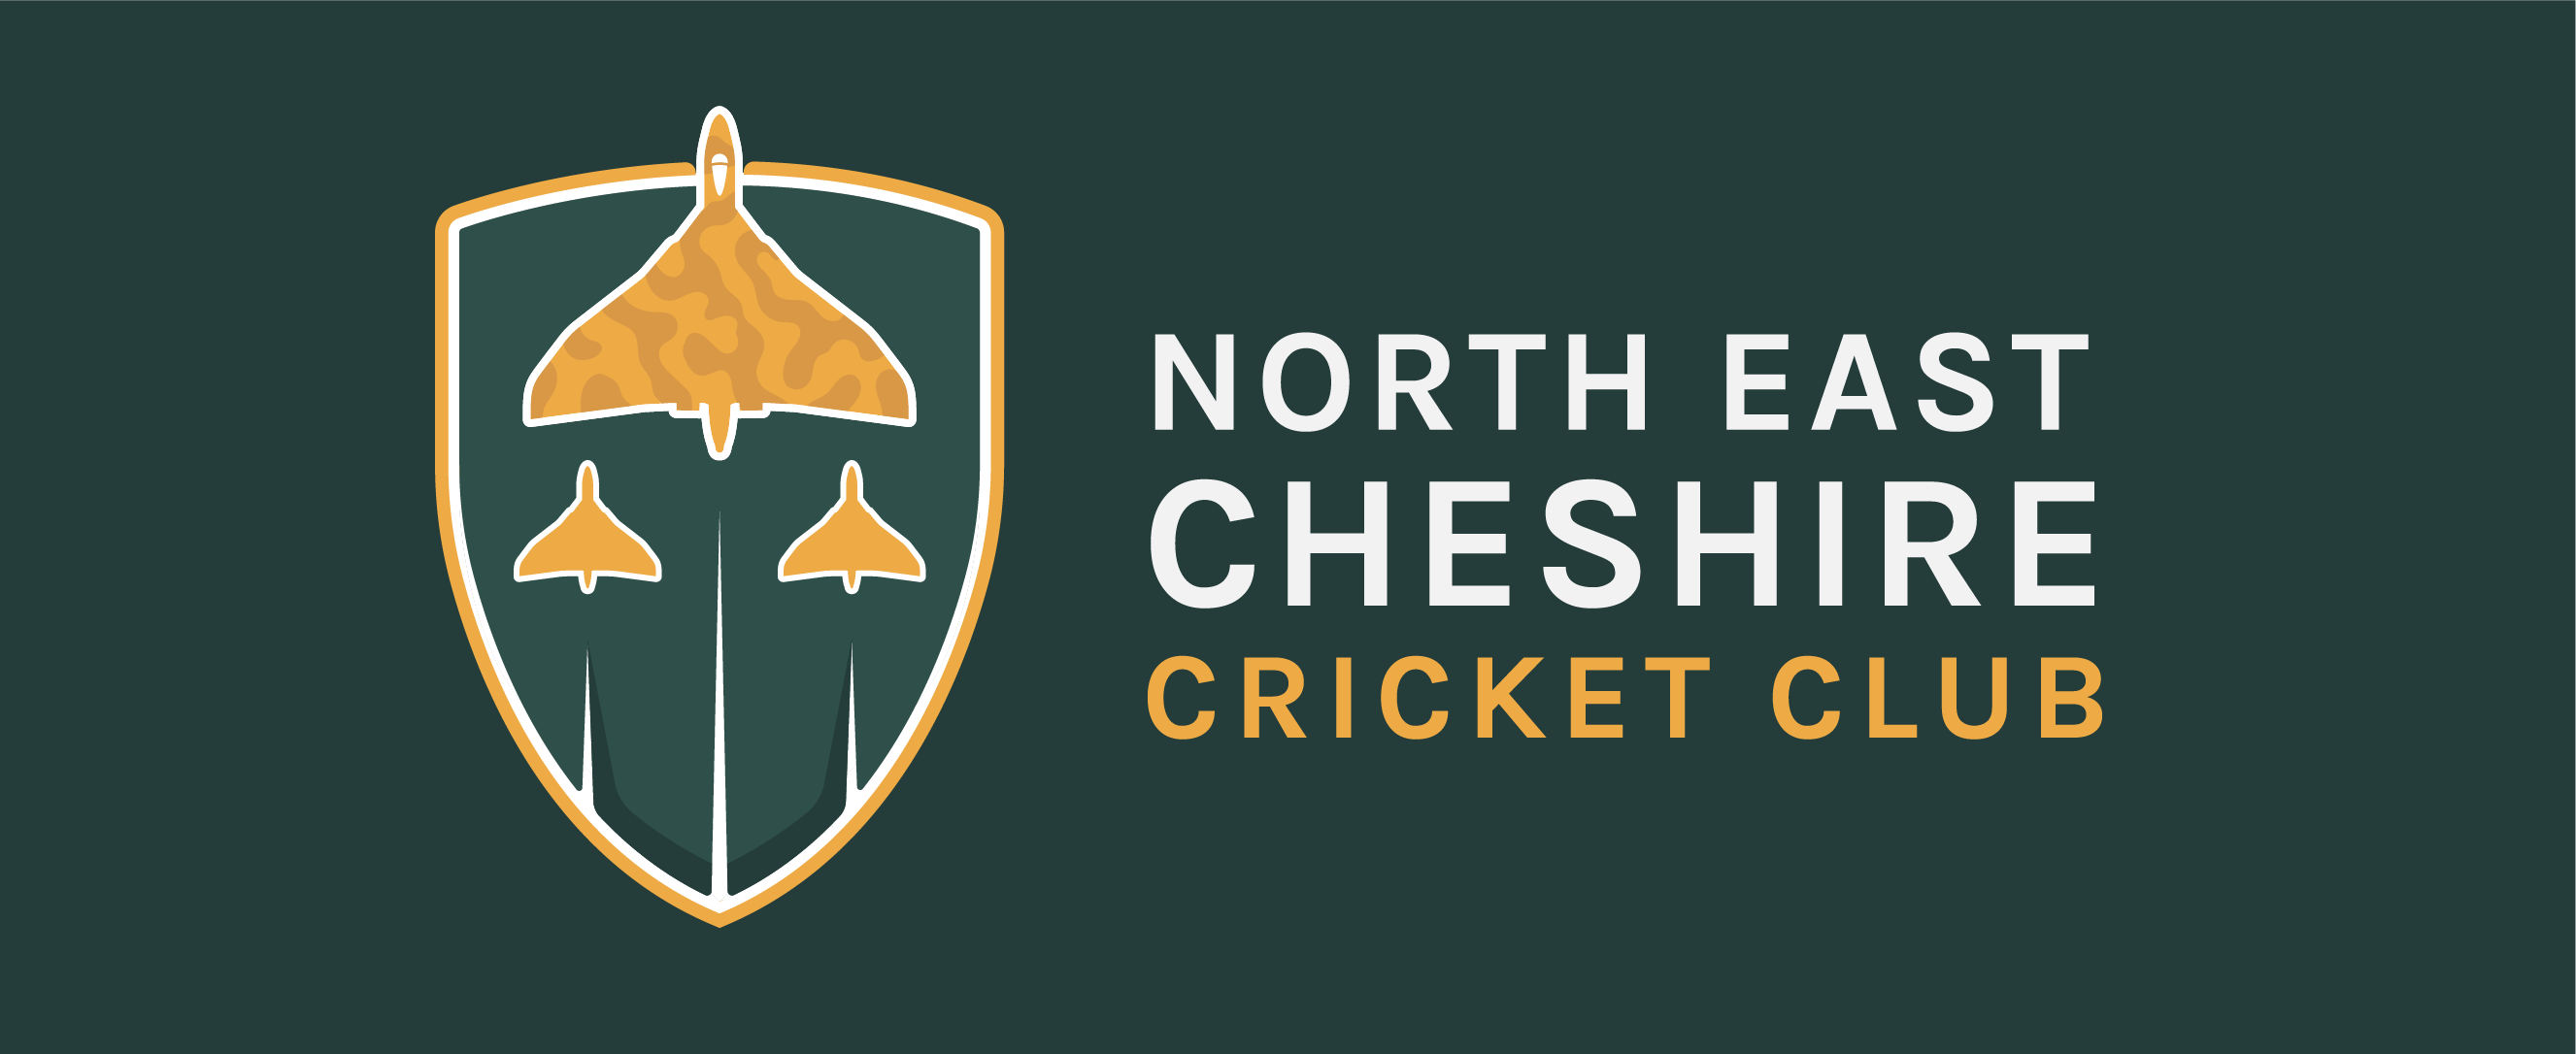 North East Cheshire Cricket Club Launch New Website